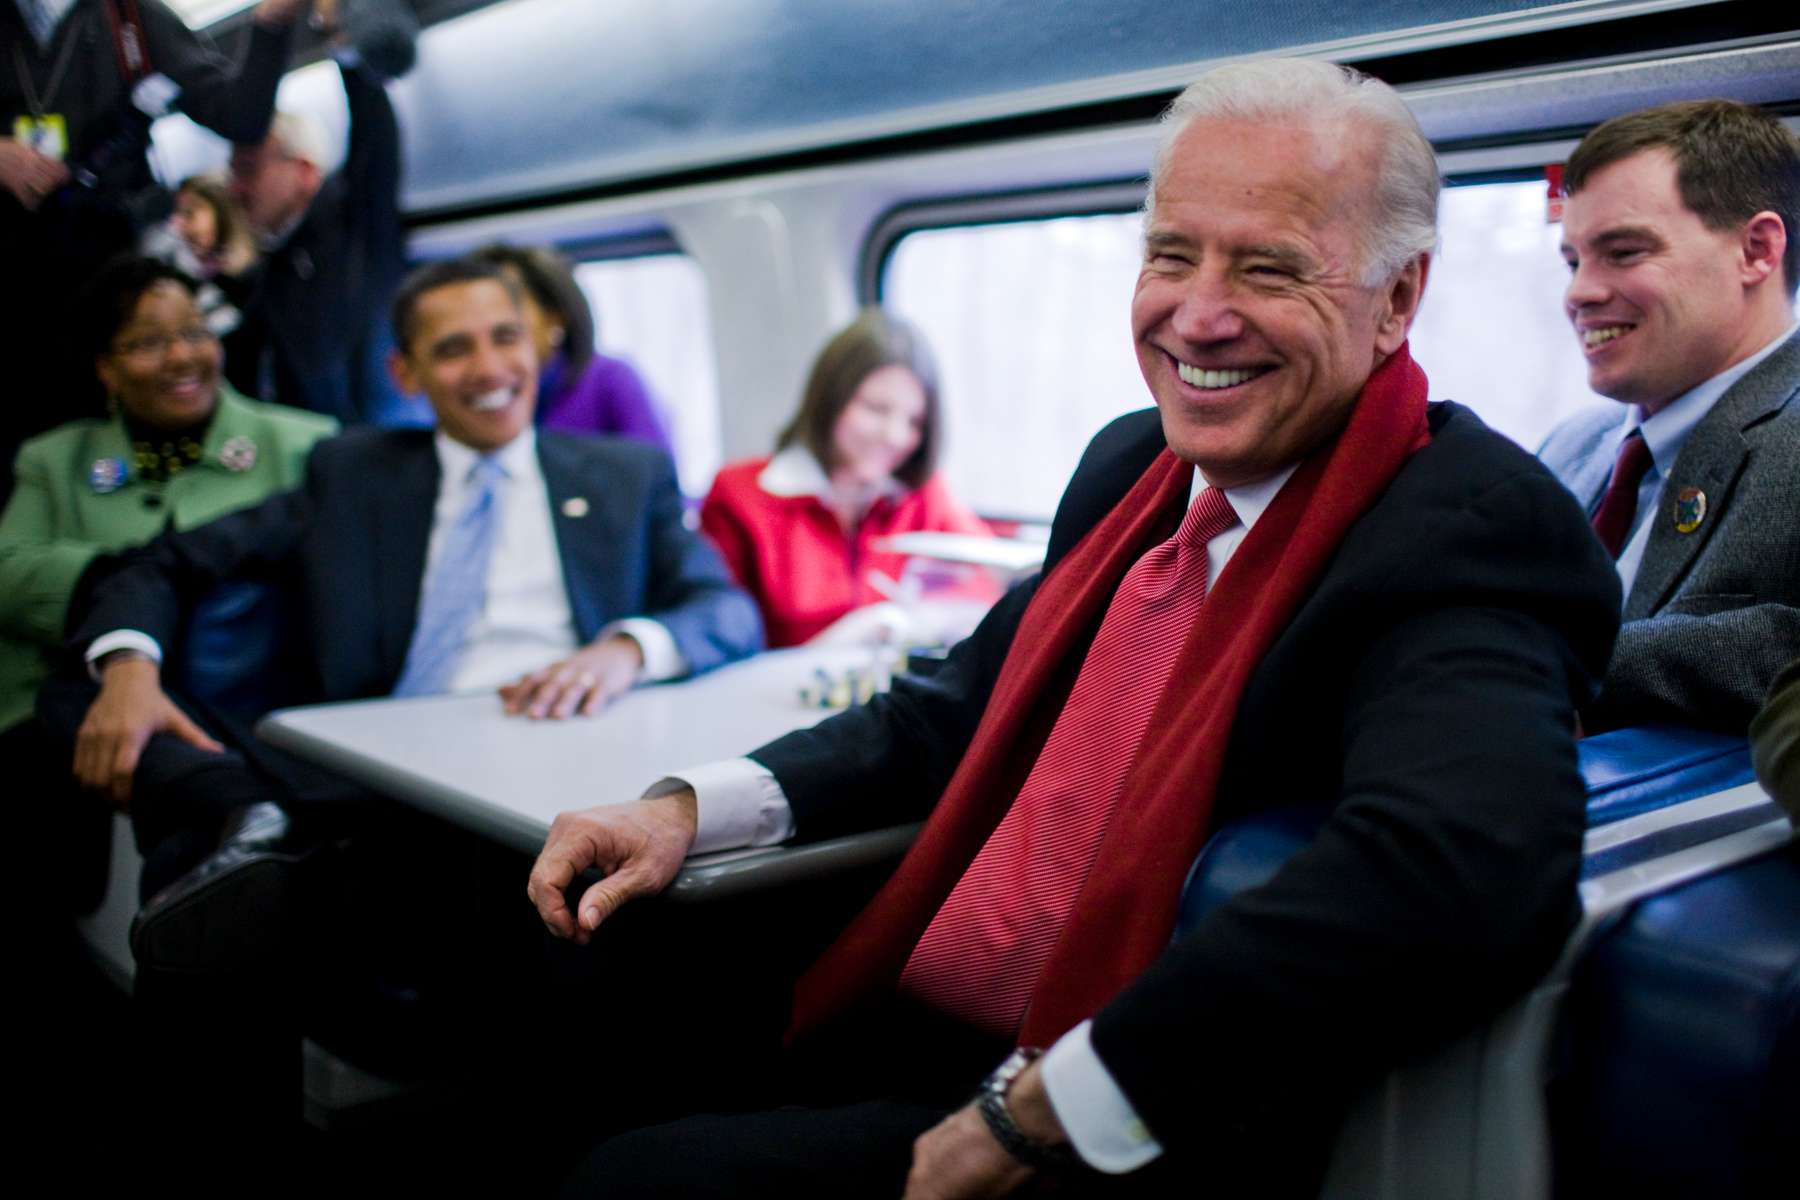 Vice President elect Joe Biden and President-elect Barack Obama speaks with passengers on the train en route to Baltimore, during his inaugural whistle stop train trip to Washington.  Photo by Brooks Kraft/Corbis